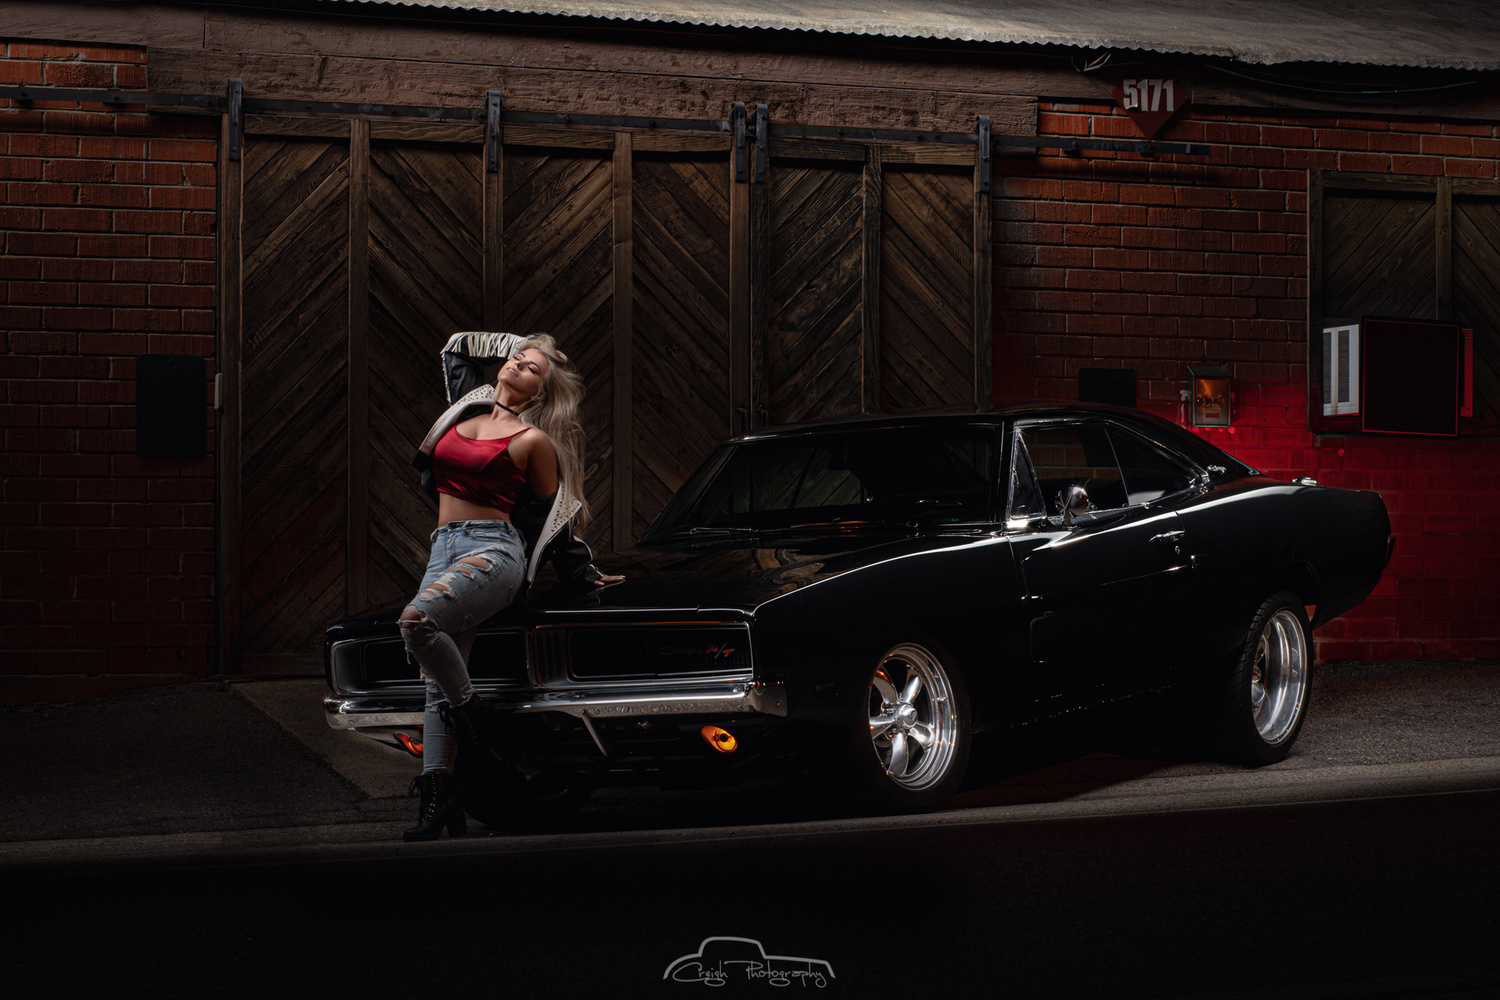 Sabrina and the Charger by Creigh McIntyre